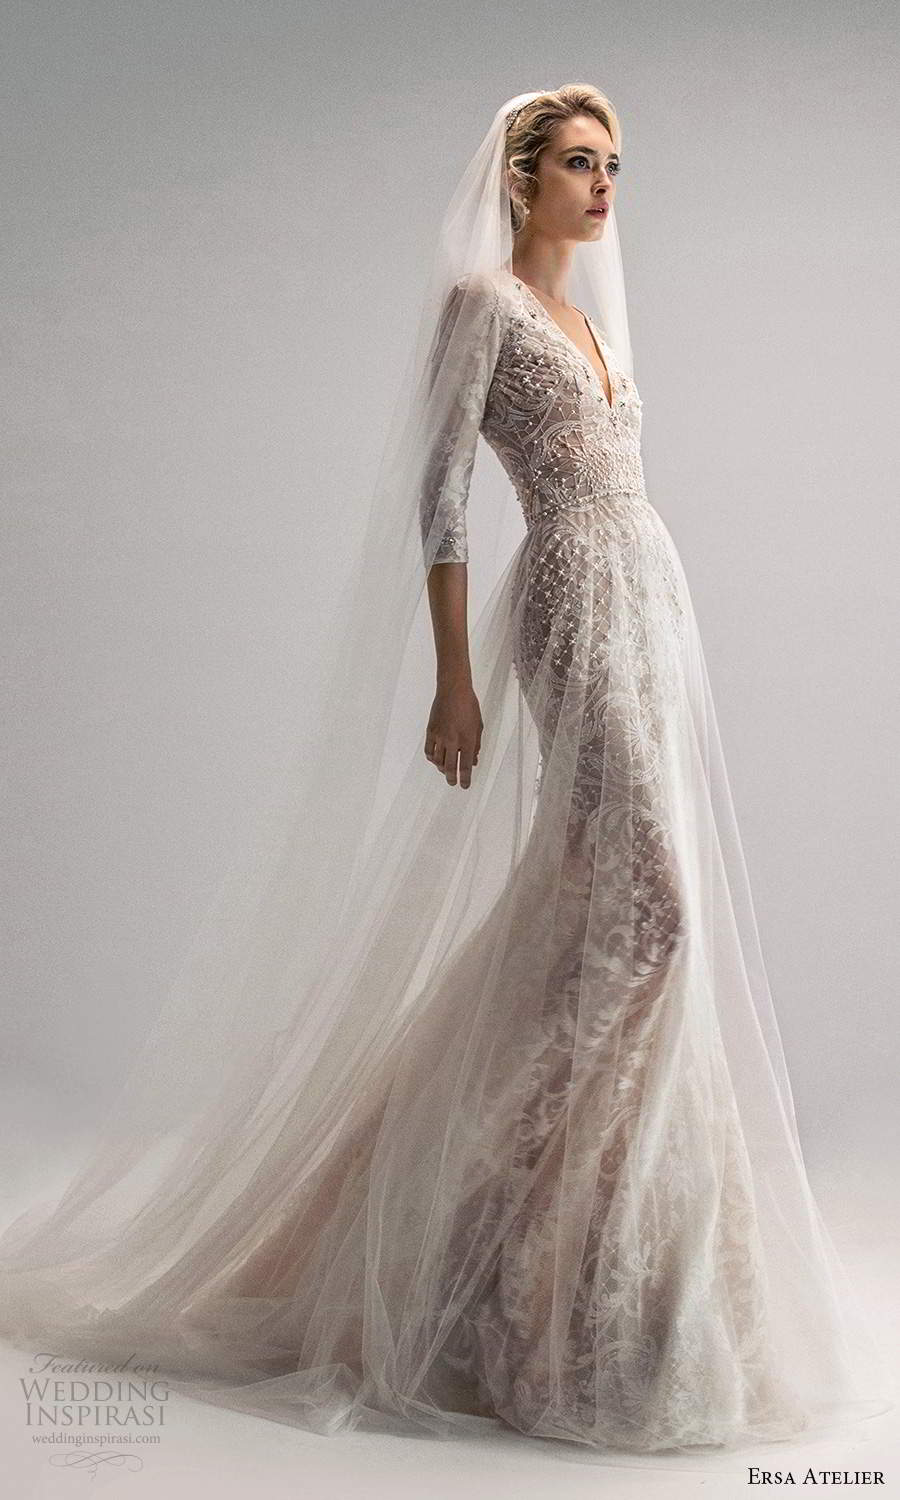 ersa atelier spring 2021 bridal 3 quarter sleeves plunging v neckline fully embellished trumpet a line wedding dress a line overskirt chapel train (21) sv